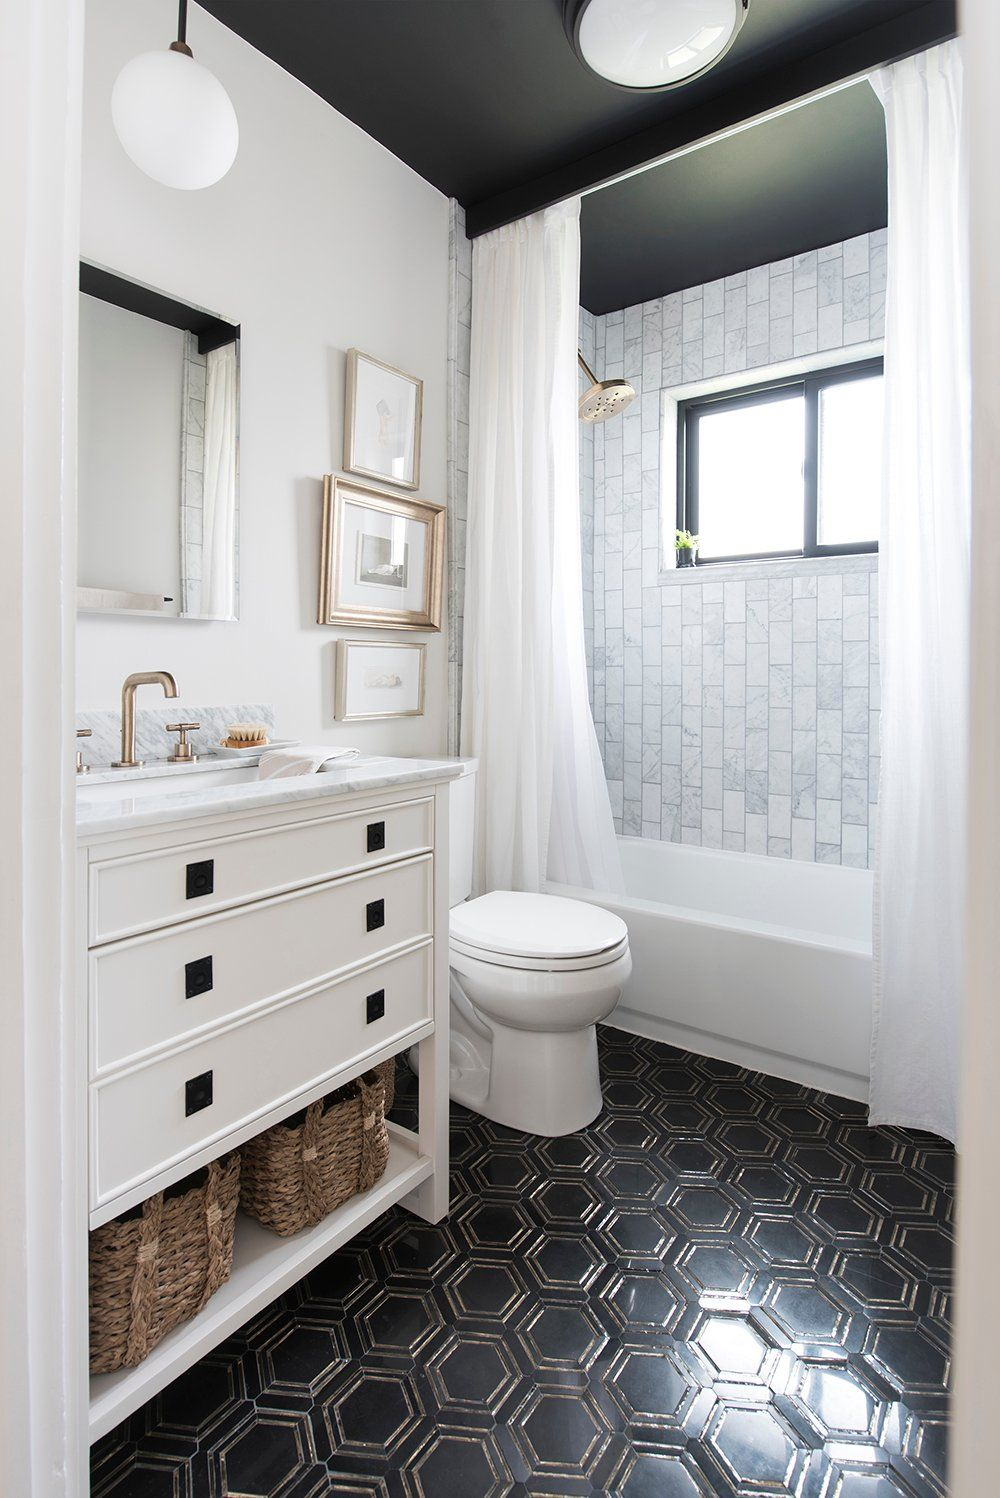 The Bathroom : One Room Challenge – Room Reveal | Paint Colors for ...